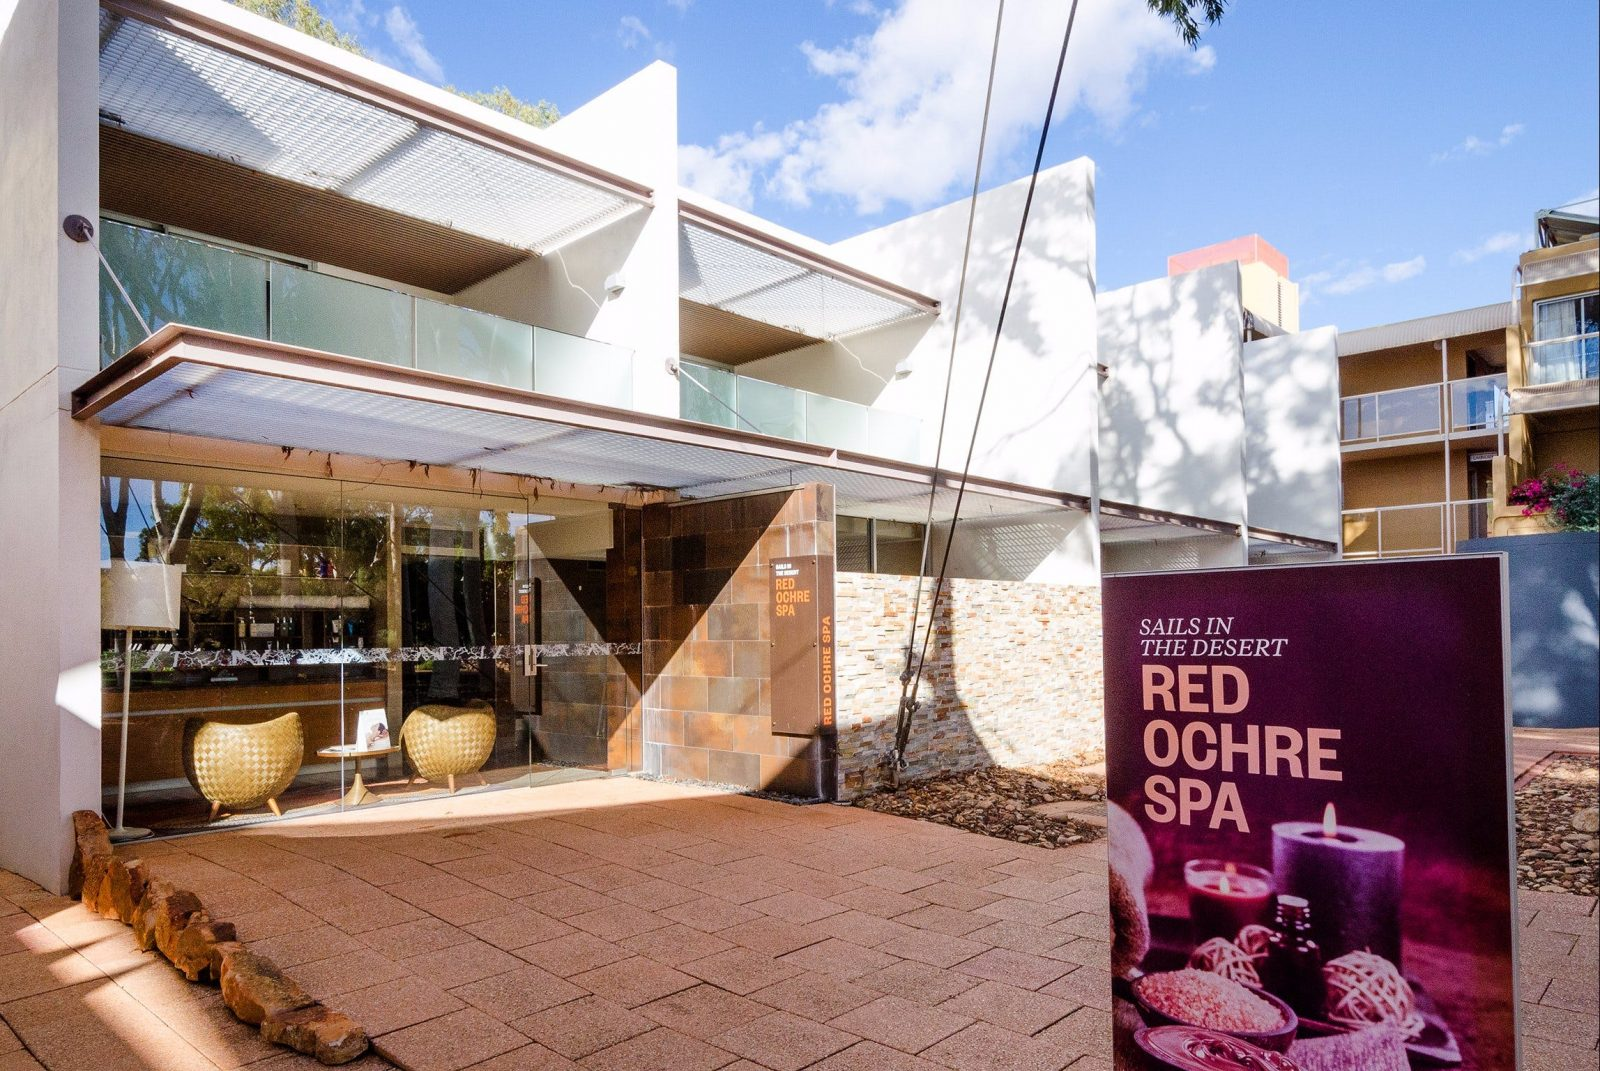 Red Ochre Spa has been designed with pampering and total indulgence in mind.